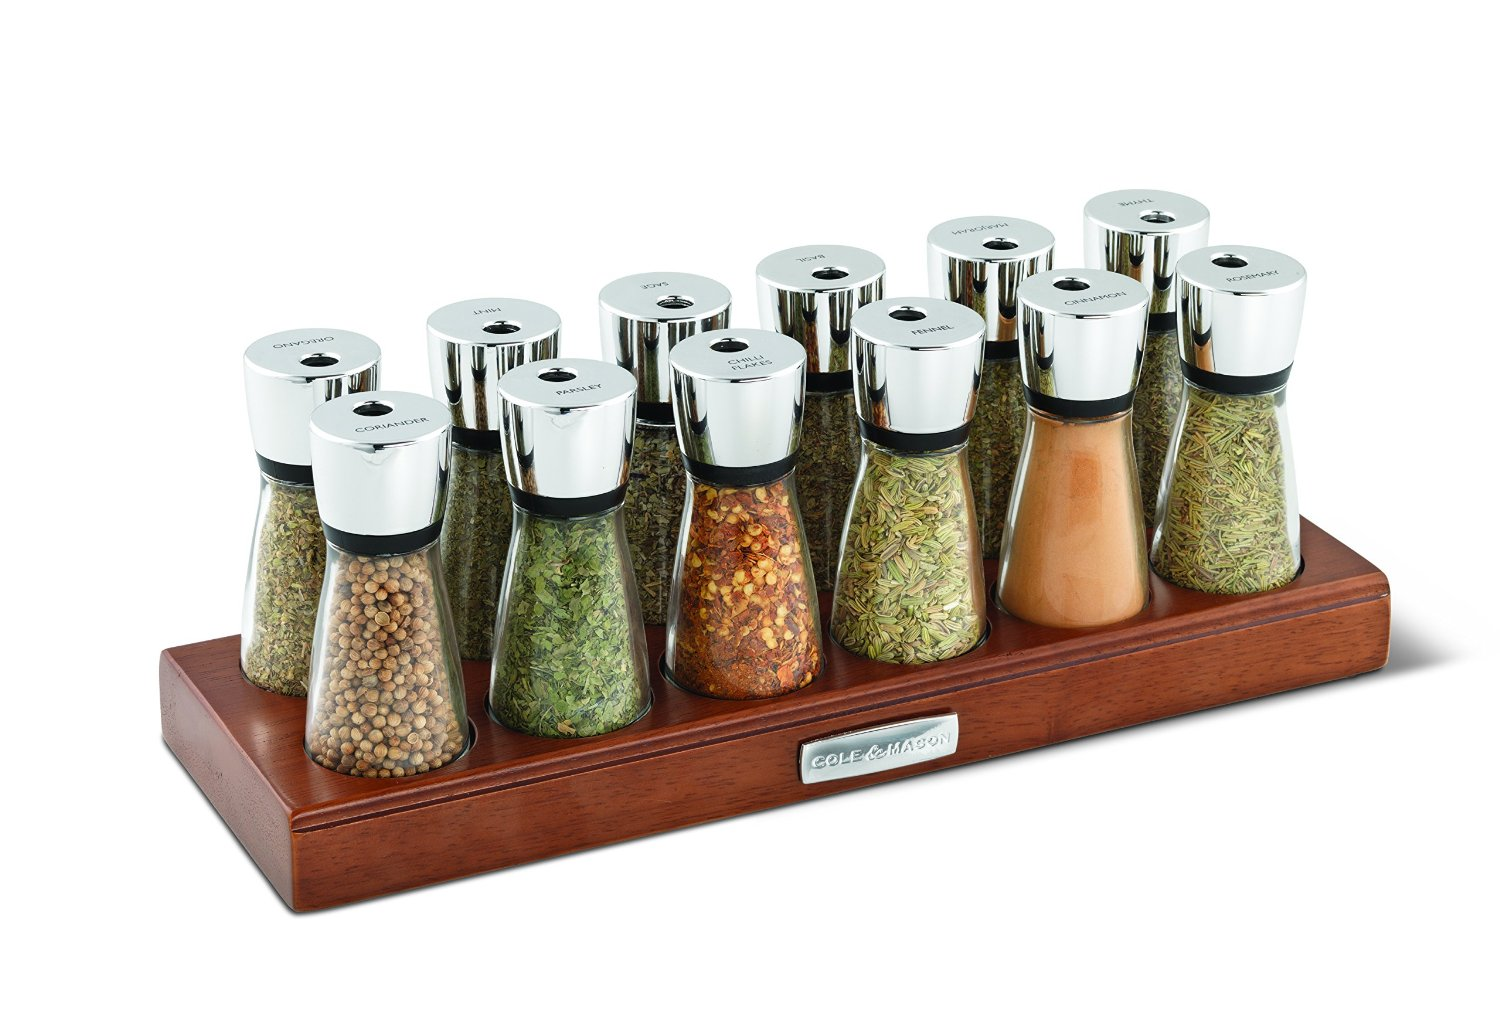 cole and mason wood spice rack with glass jars 12 jar brown ebay. Black Bedroom Furniture Sets. Home Design Ideas